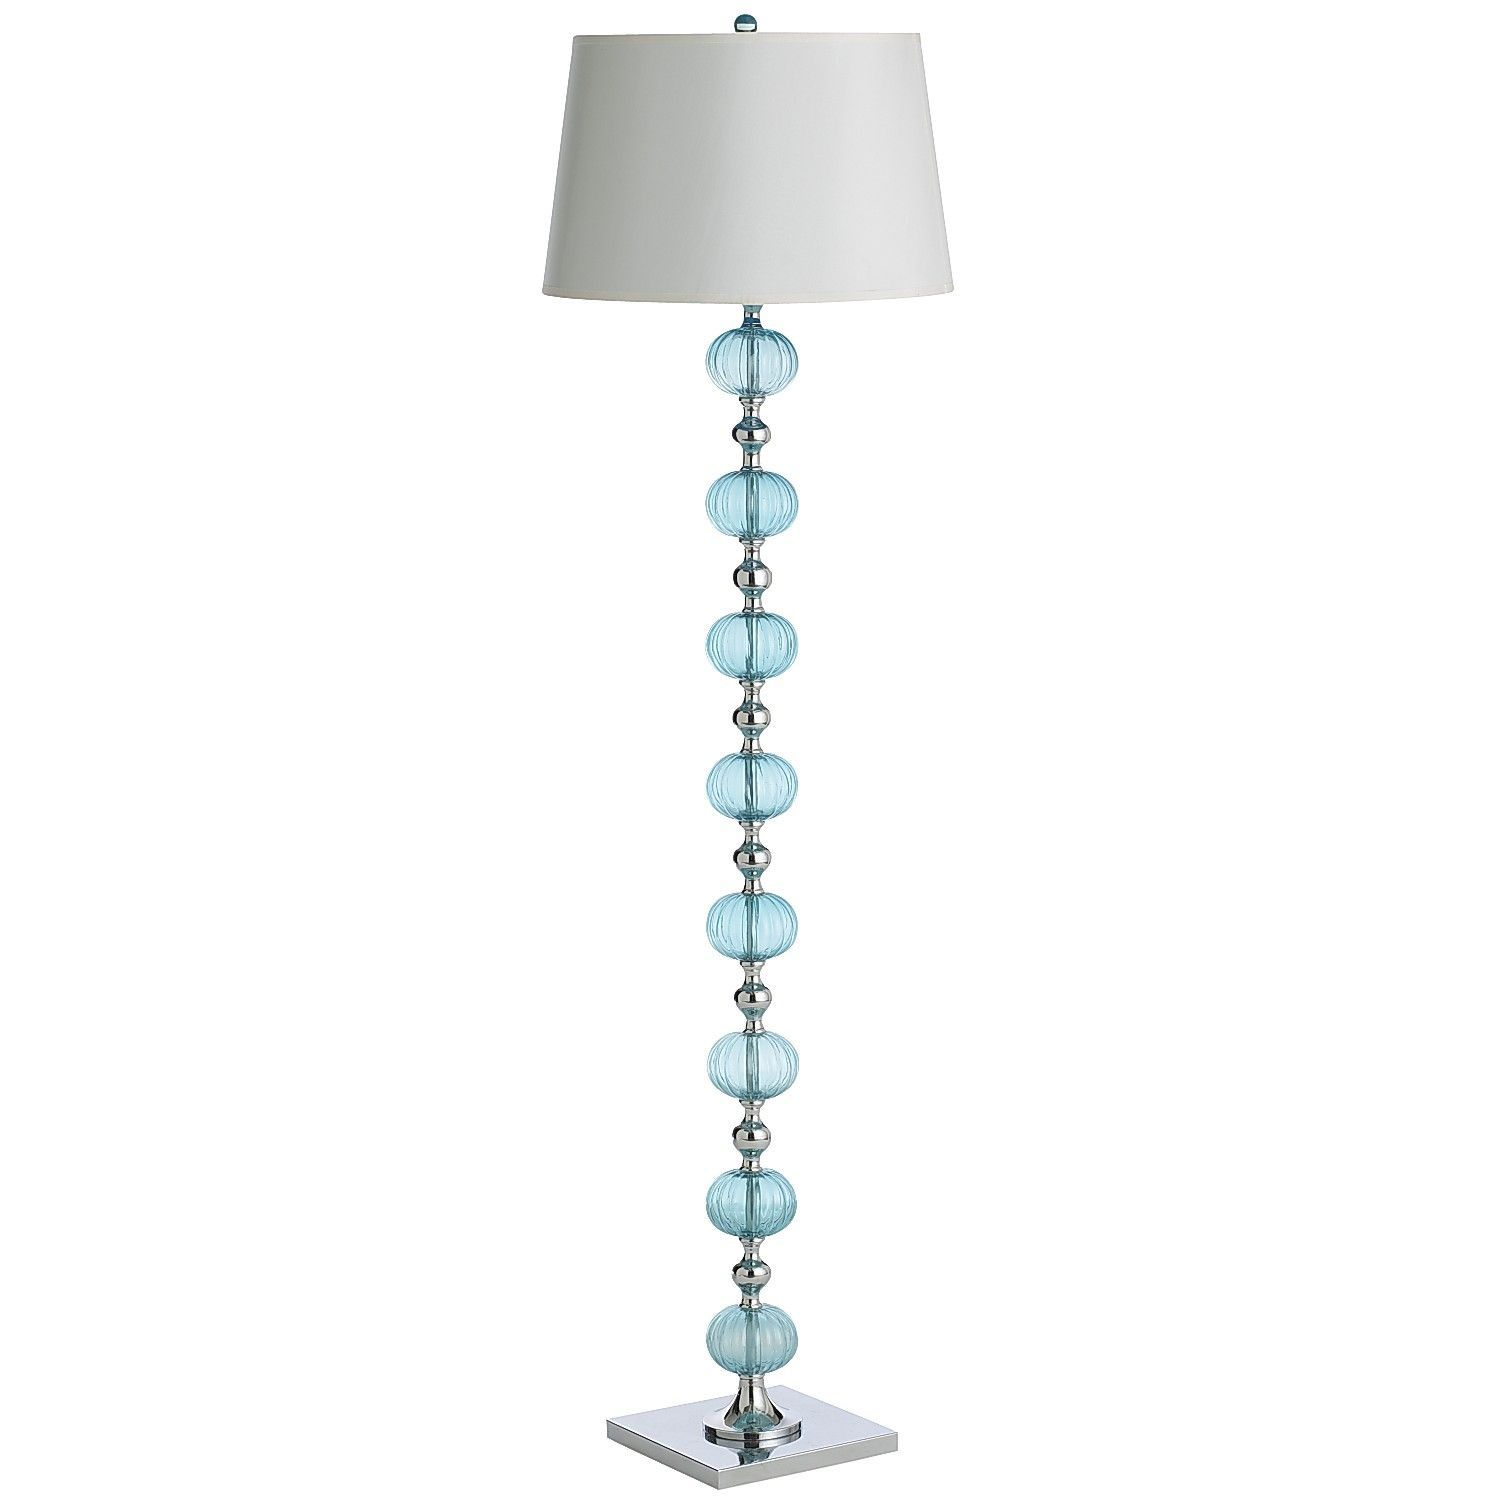 Pier 1 Floor Lamps Prepossessing Aqua Glass Floor Lamp  Pier1 Us  Furnish  Pinterest  Aqua Glass Decorating Inspiration